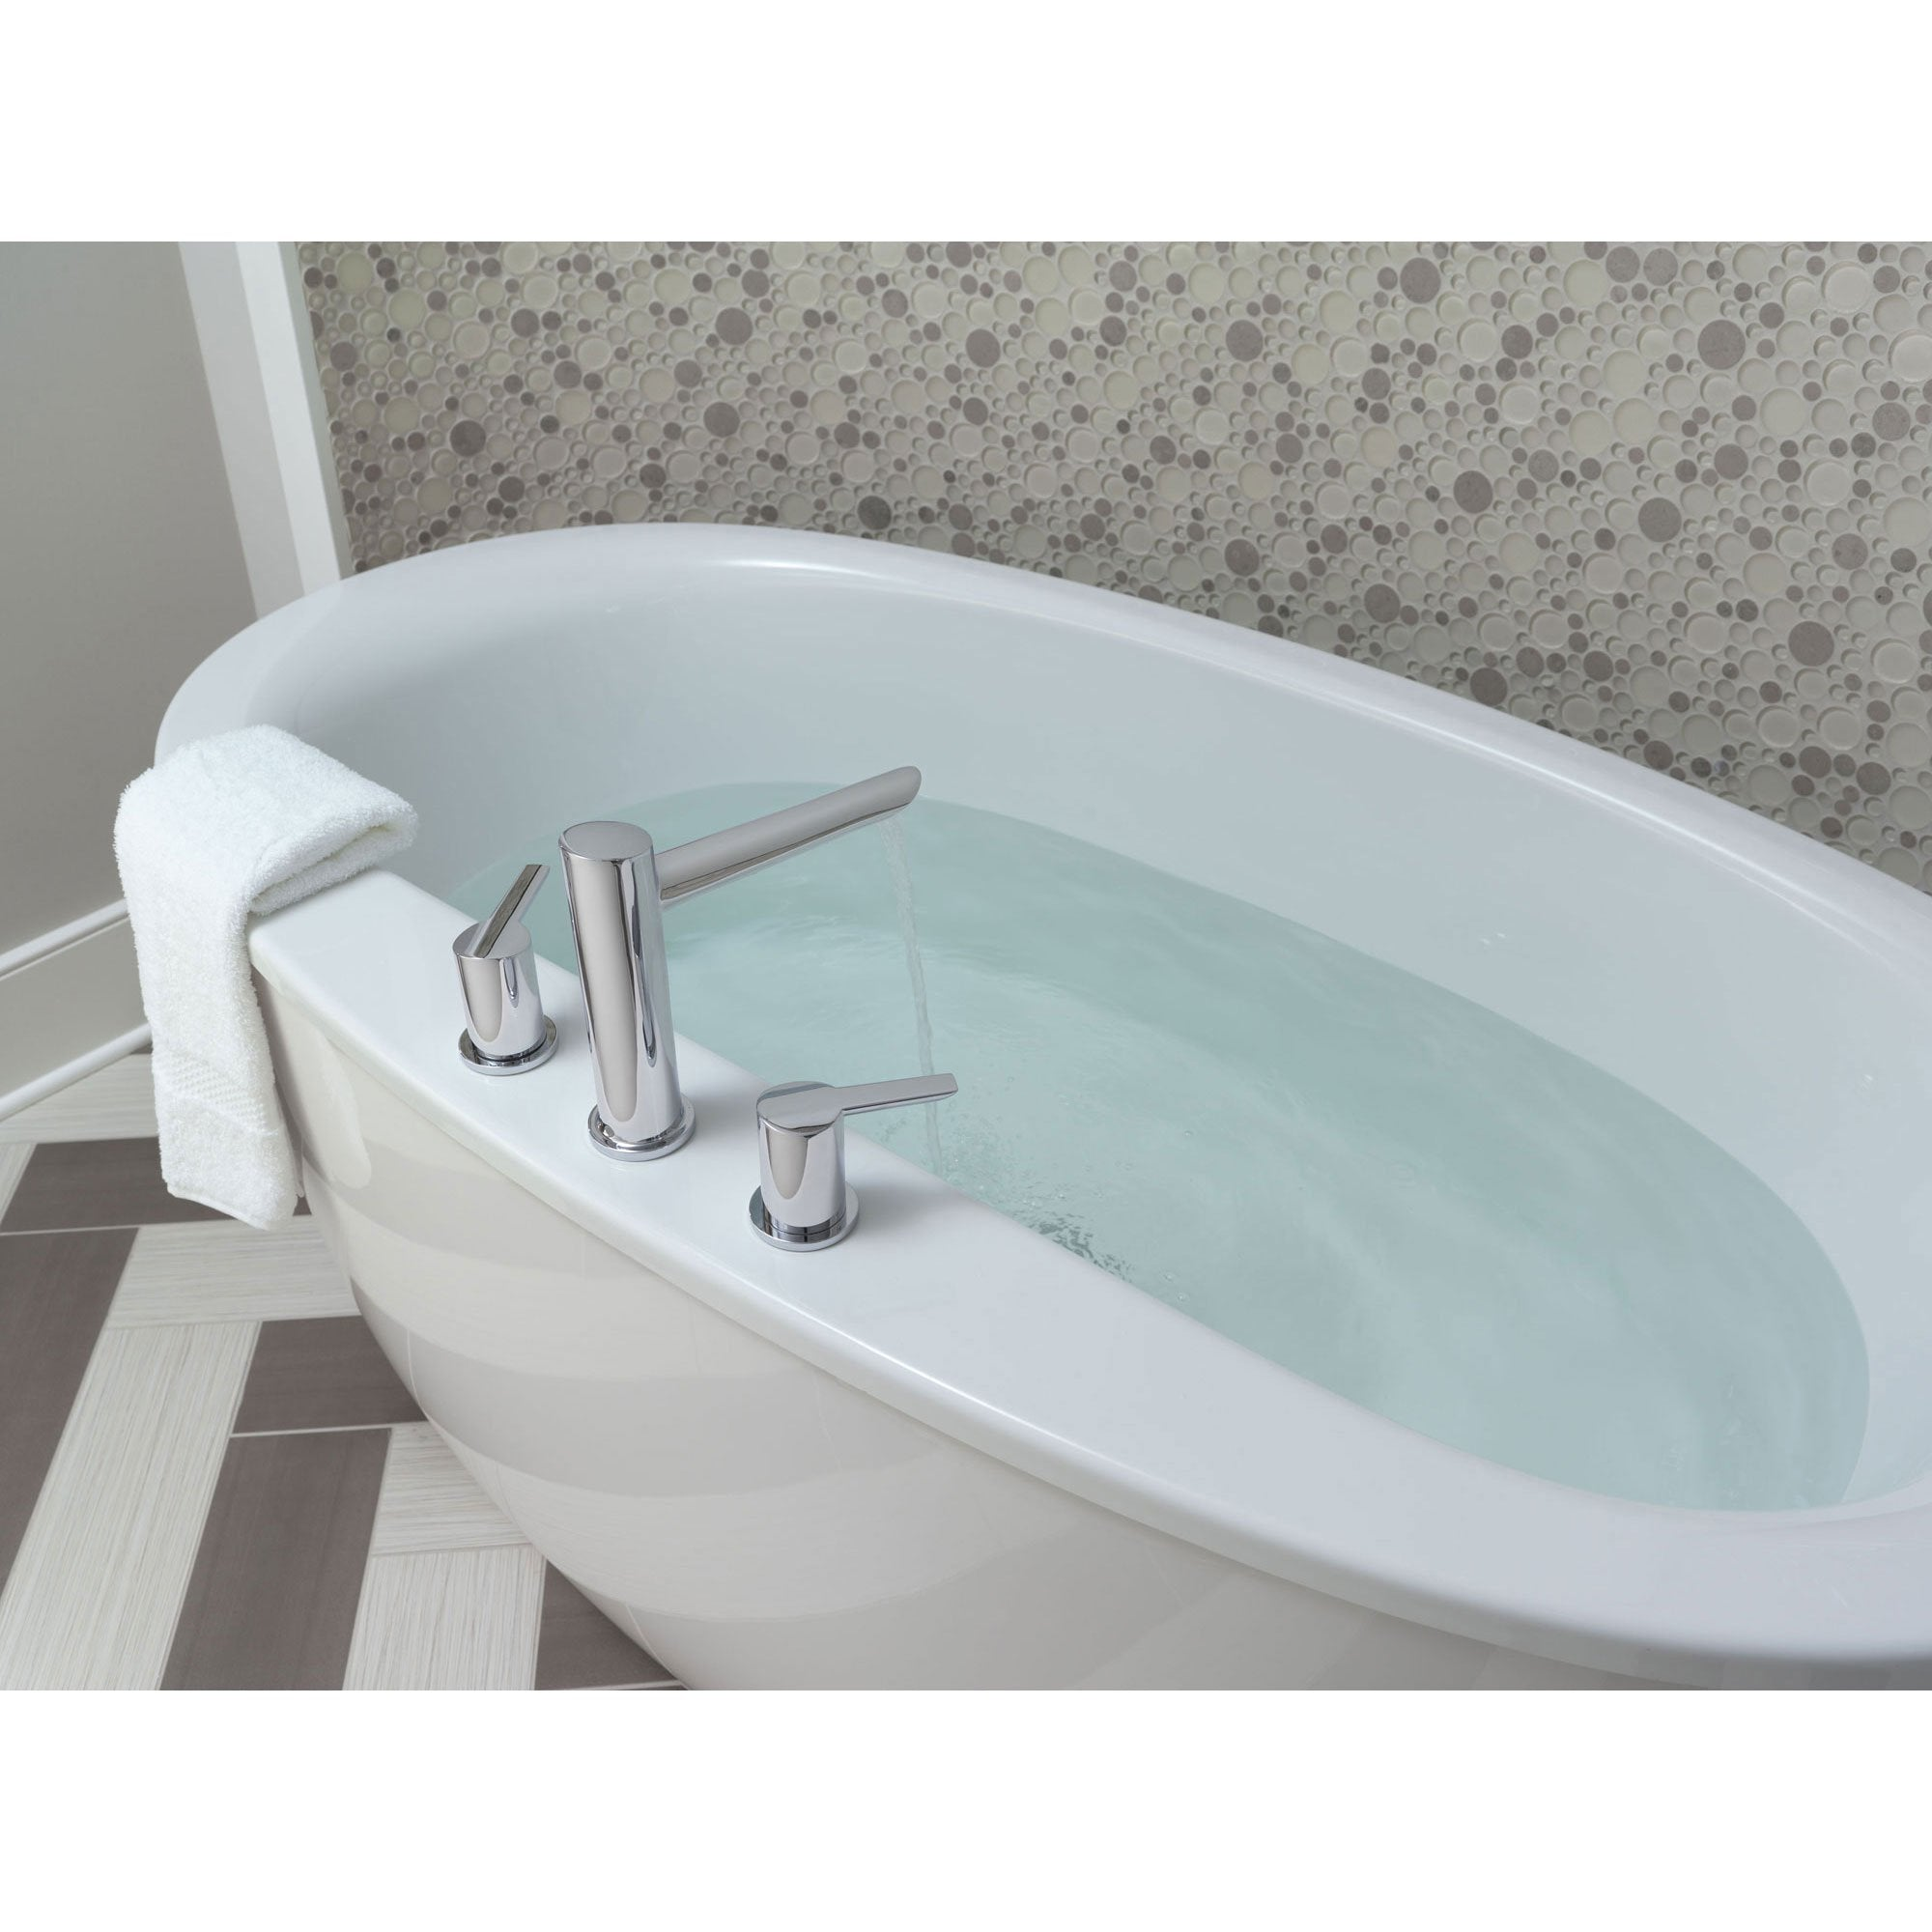 Delta Compel Modern Chrome 2-Handle Roman Tub Filler Faucet with ...